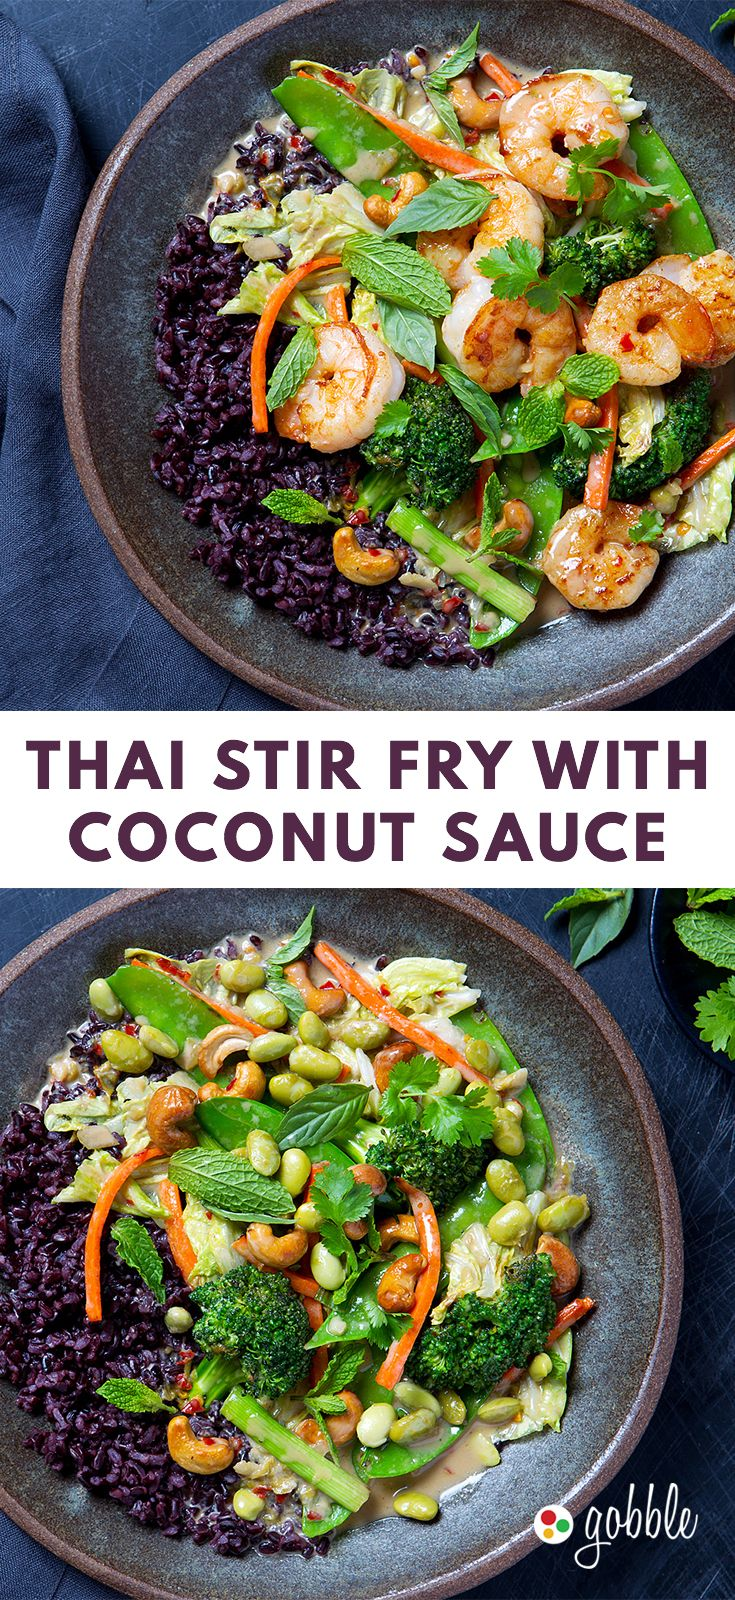 Gobble thai stir fry with coconut sauce dinner in 15 minutes gobble thai stir fry with coconut sauce dinner in 15 minutes dinner for two quick and easy recipes new recipes to try cook at home food forumfinder Image collections